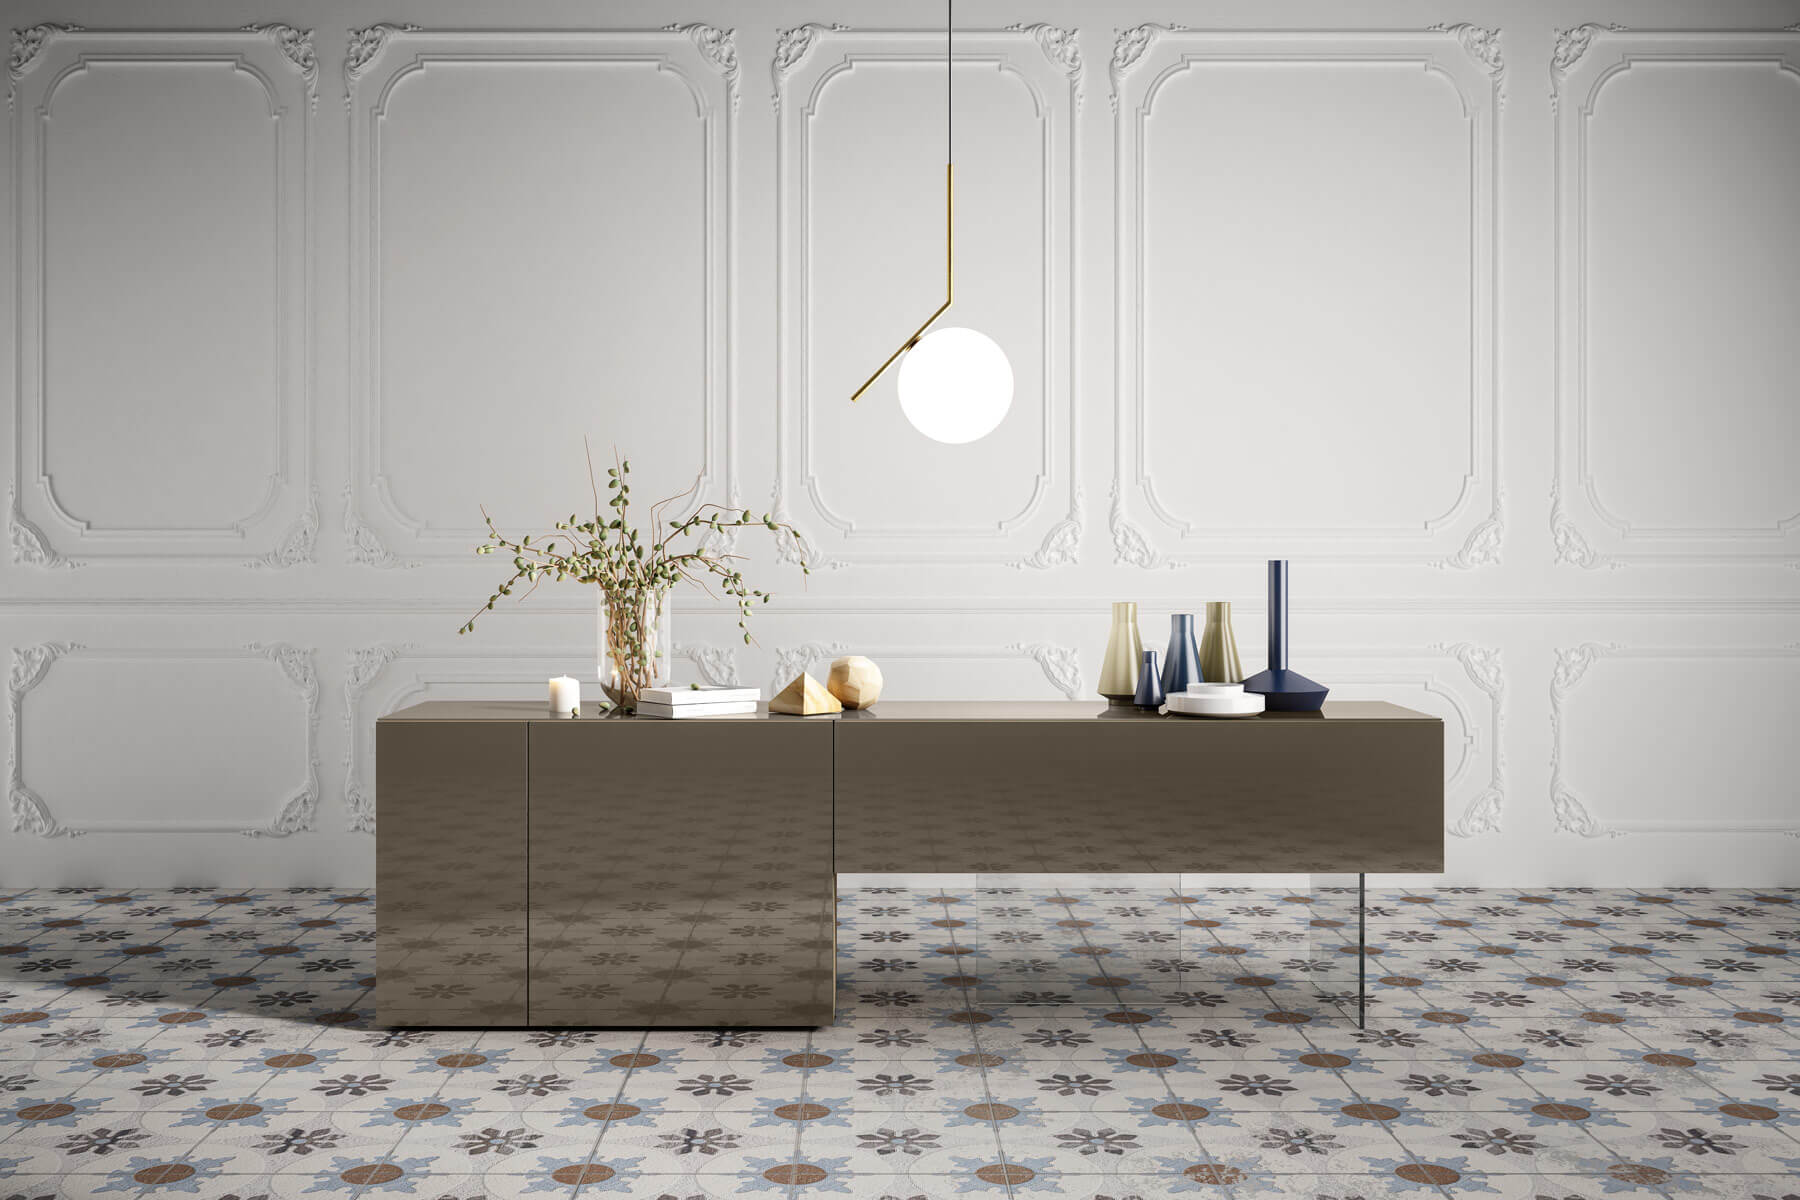 La Credenza En Español : Sideboards tailored to your spaces lago design